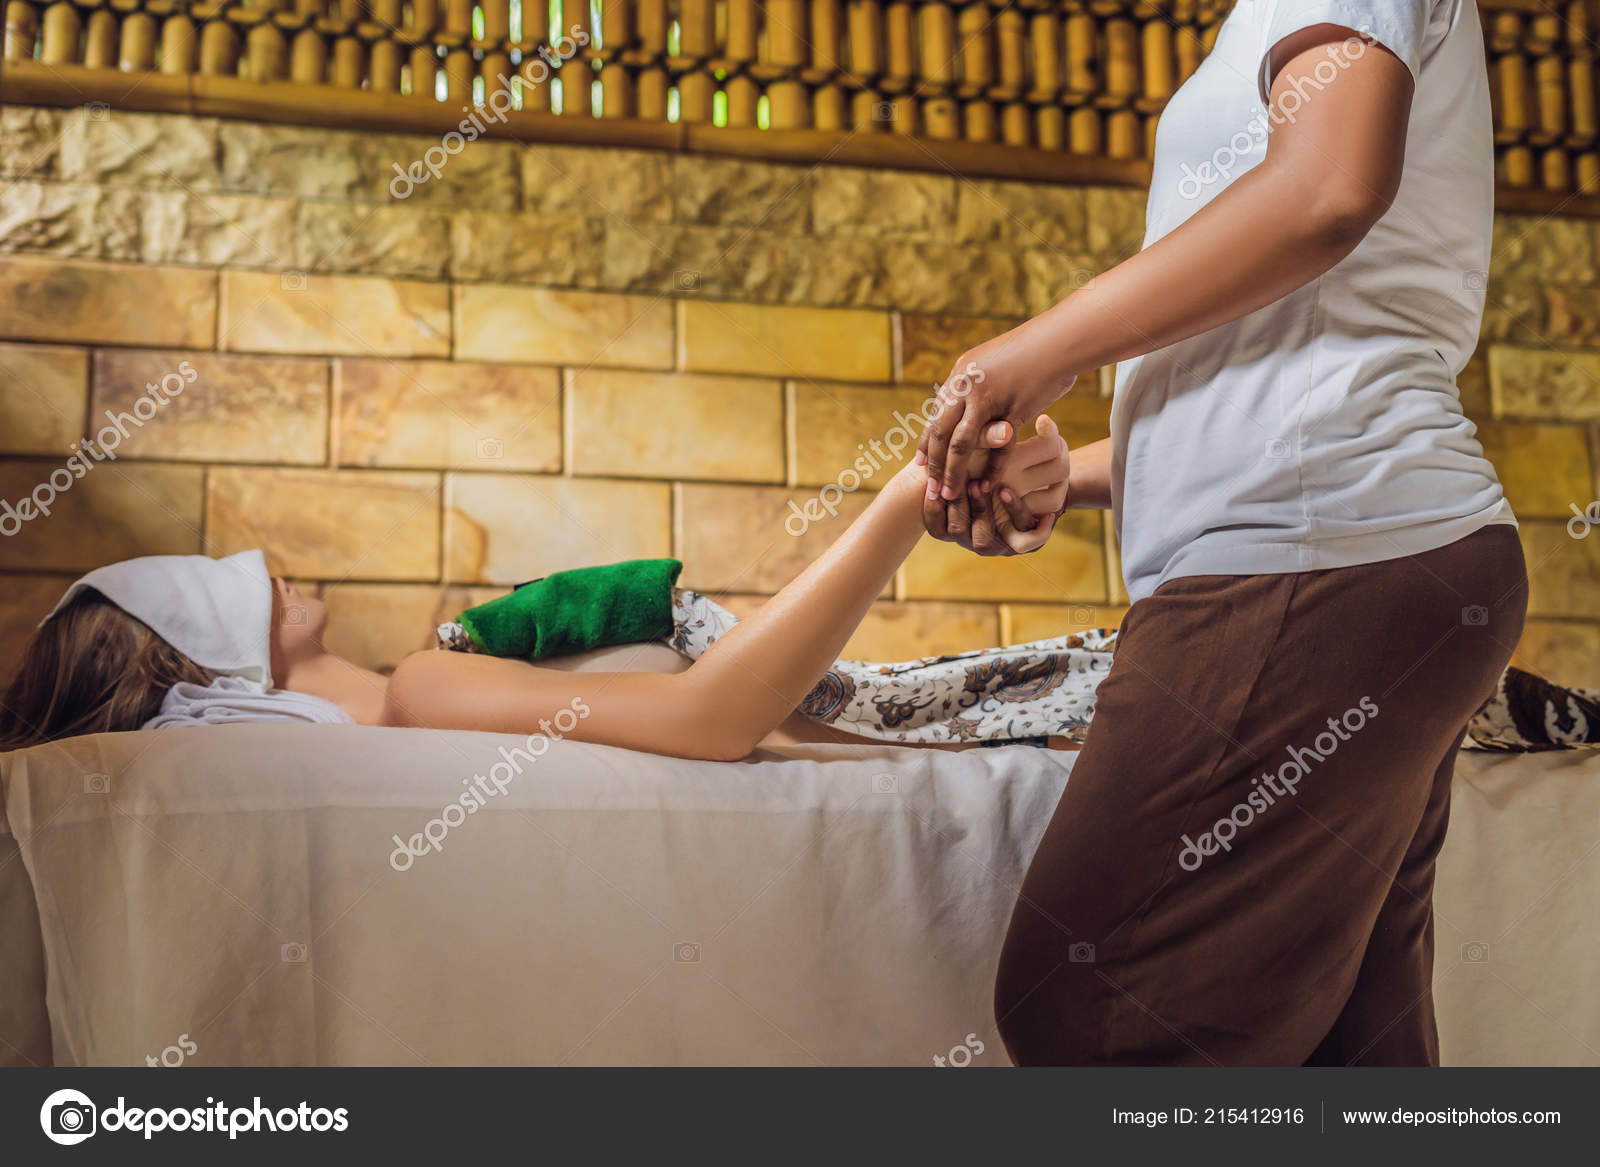 Salon Massage Thai Young Woman Total Relaxation Thai Massage Spa Salon Stock Photo